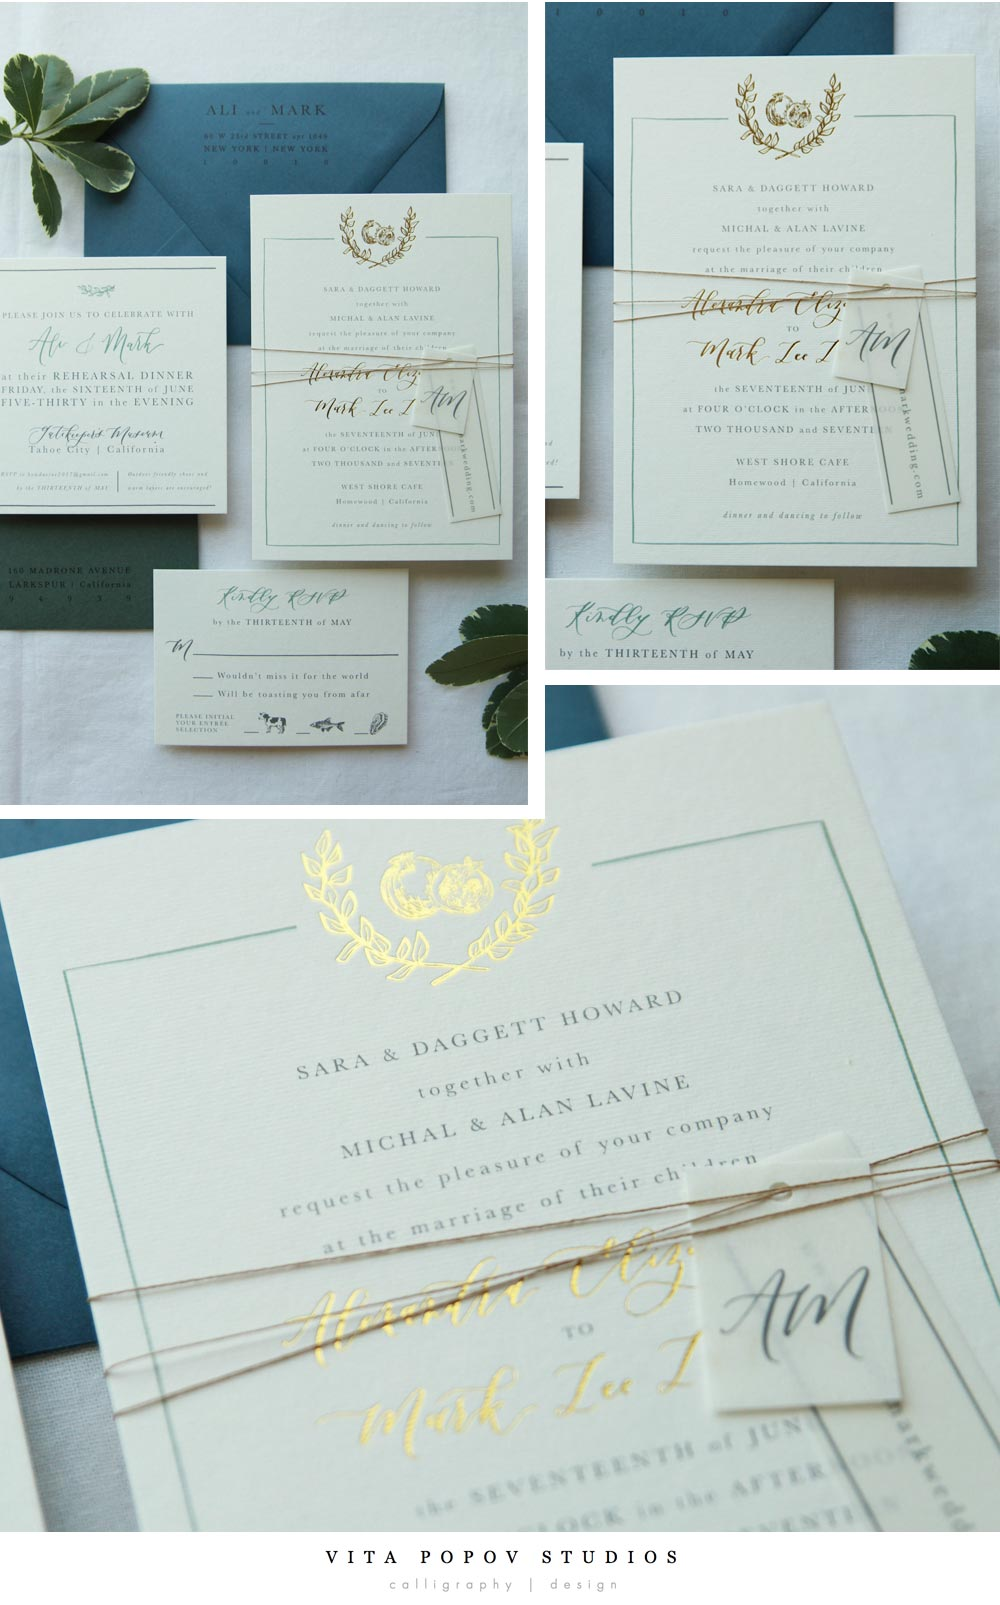 Custom made simple wedding invitation suite by Vita Popov Studios